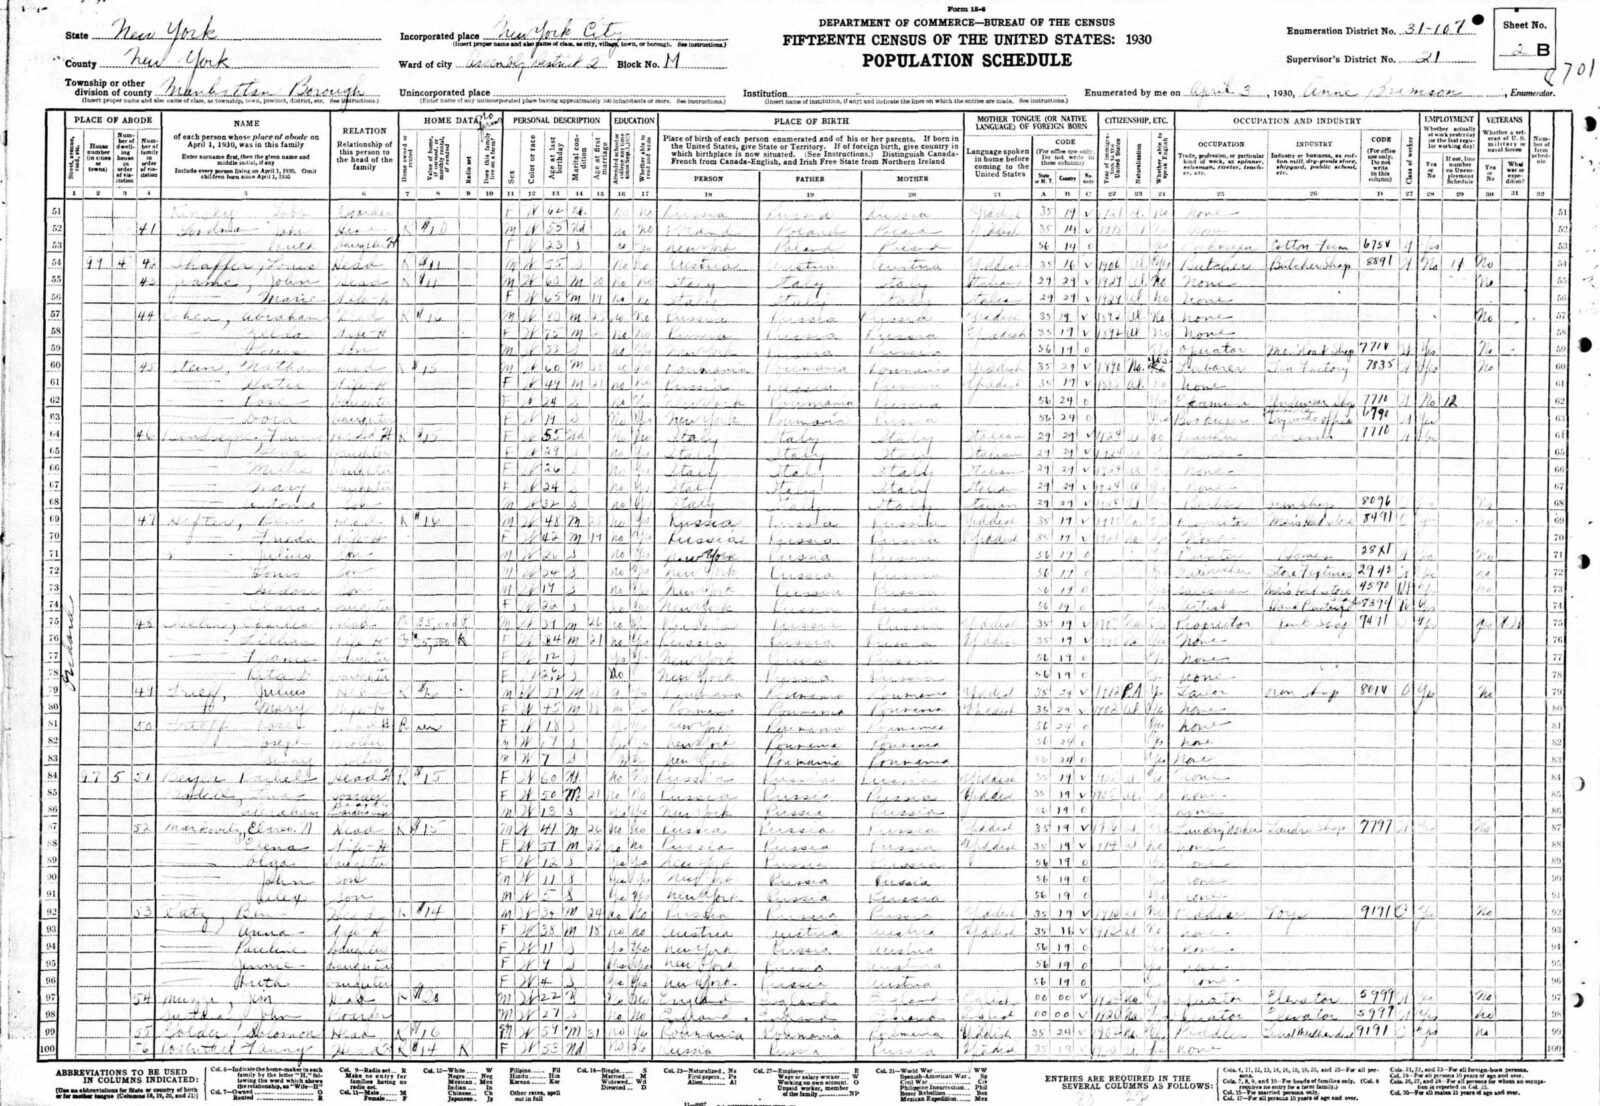 1930 census of Manhattan with multiple rows of names and demographics written in script